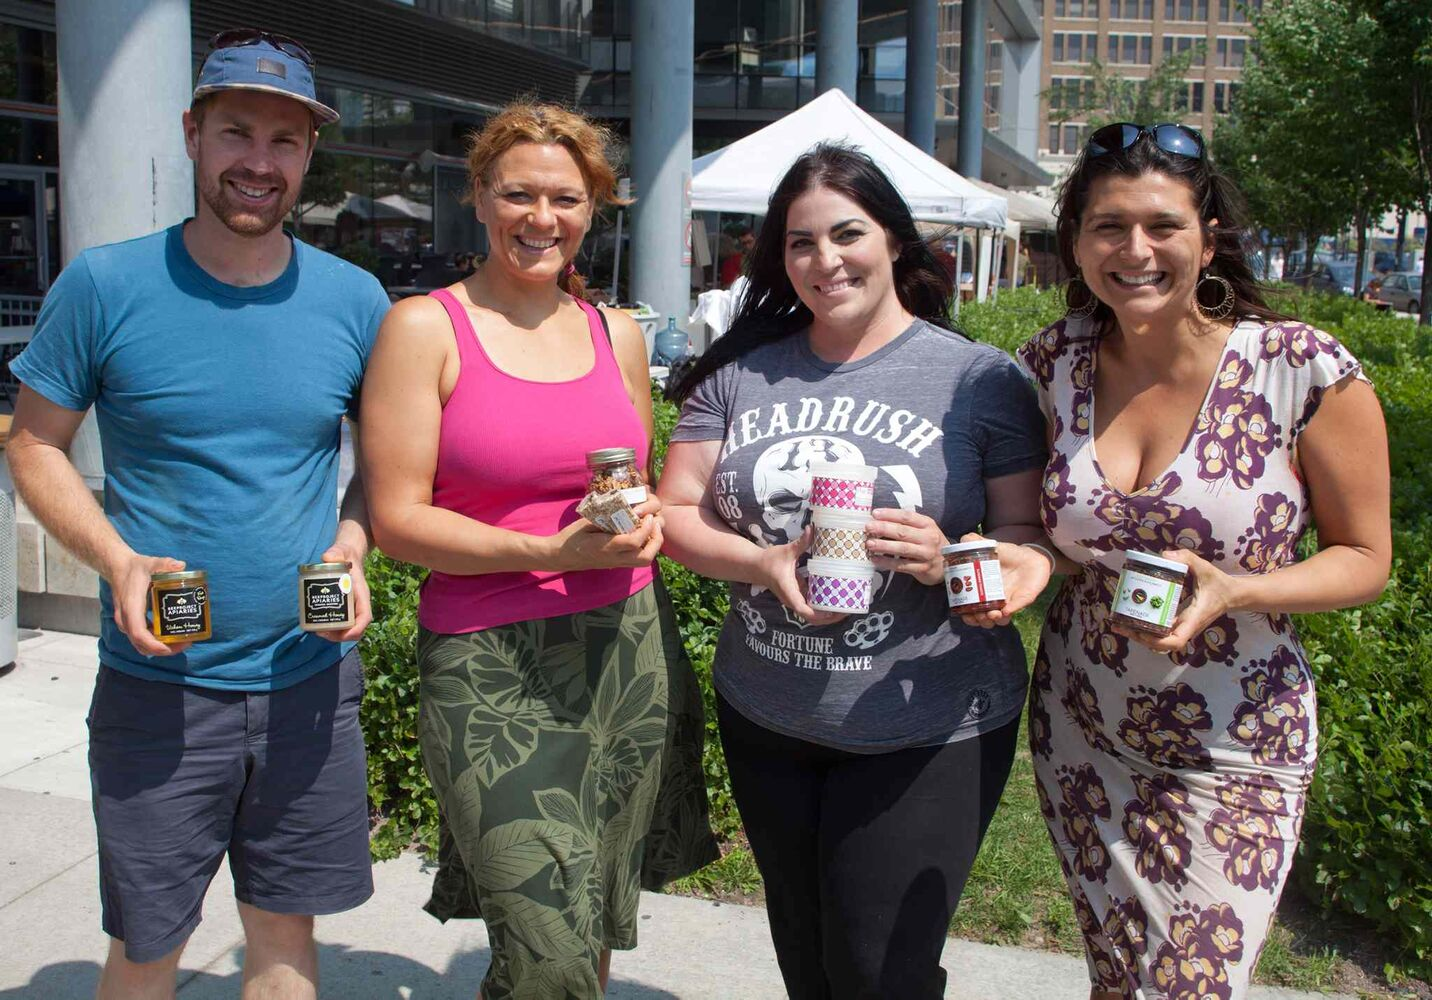 Unique products, baking and produce are available at the outdoor Downtown Farmer's Market at Manitoba Hydro Place. The market, organized by Downtown Winnipeg BIZ, is open from 10 a.m. to 3 p.m. every Thursday during the summer months, until mid-September. It then reverts to a monthly event indoors. Pictured, from left, are Chris Kirouac (beeproject.ca), Rebecca Hadfield (zenbars.ca), Angela Filbert (whippedcosmetics.com) and Bessie Hatizitrifonos (bessiesbestfoods.com).